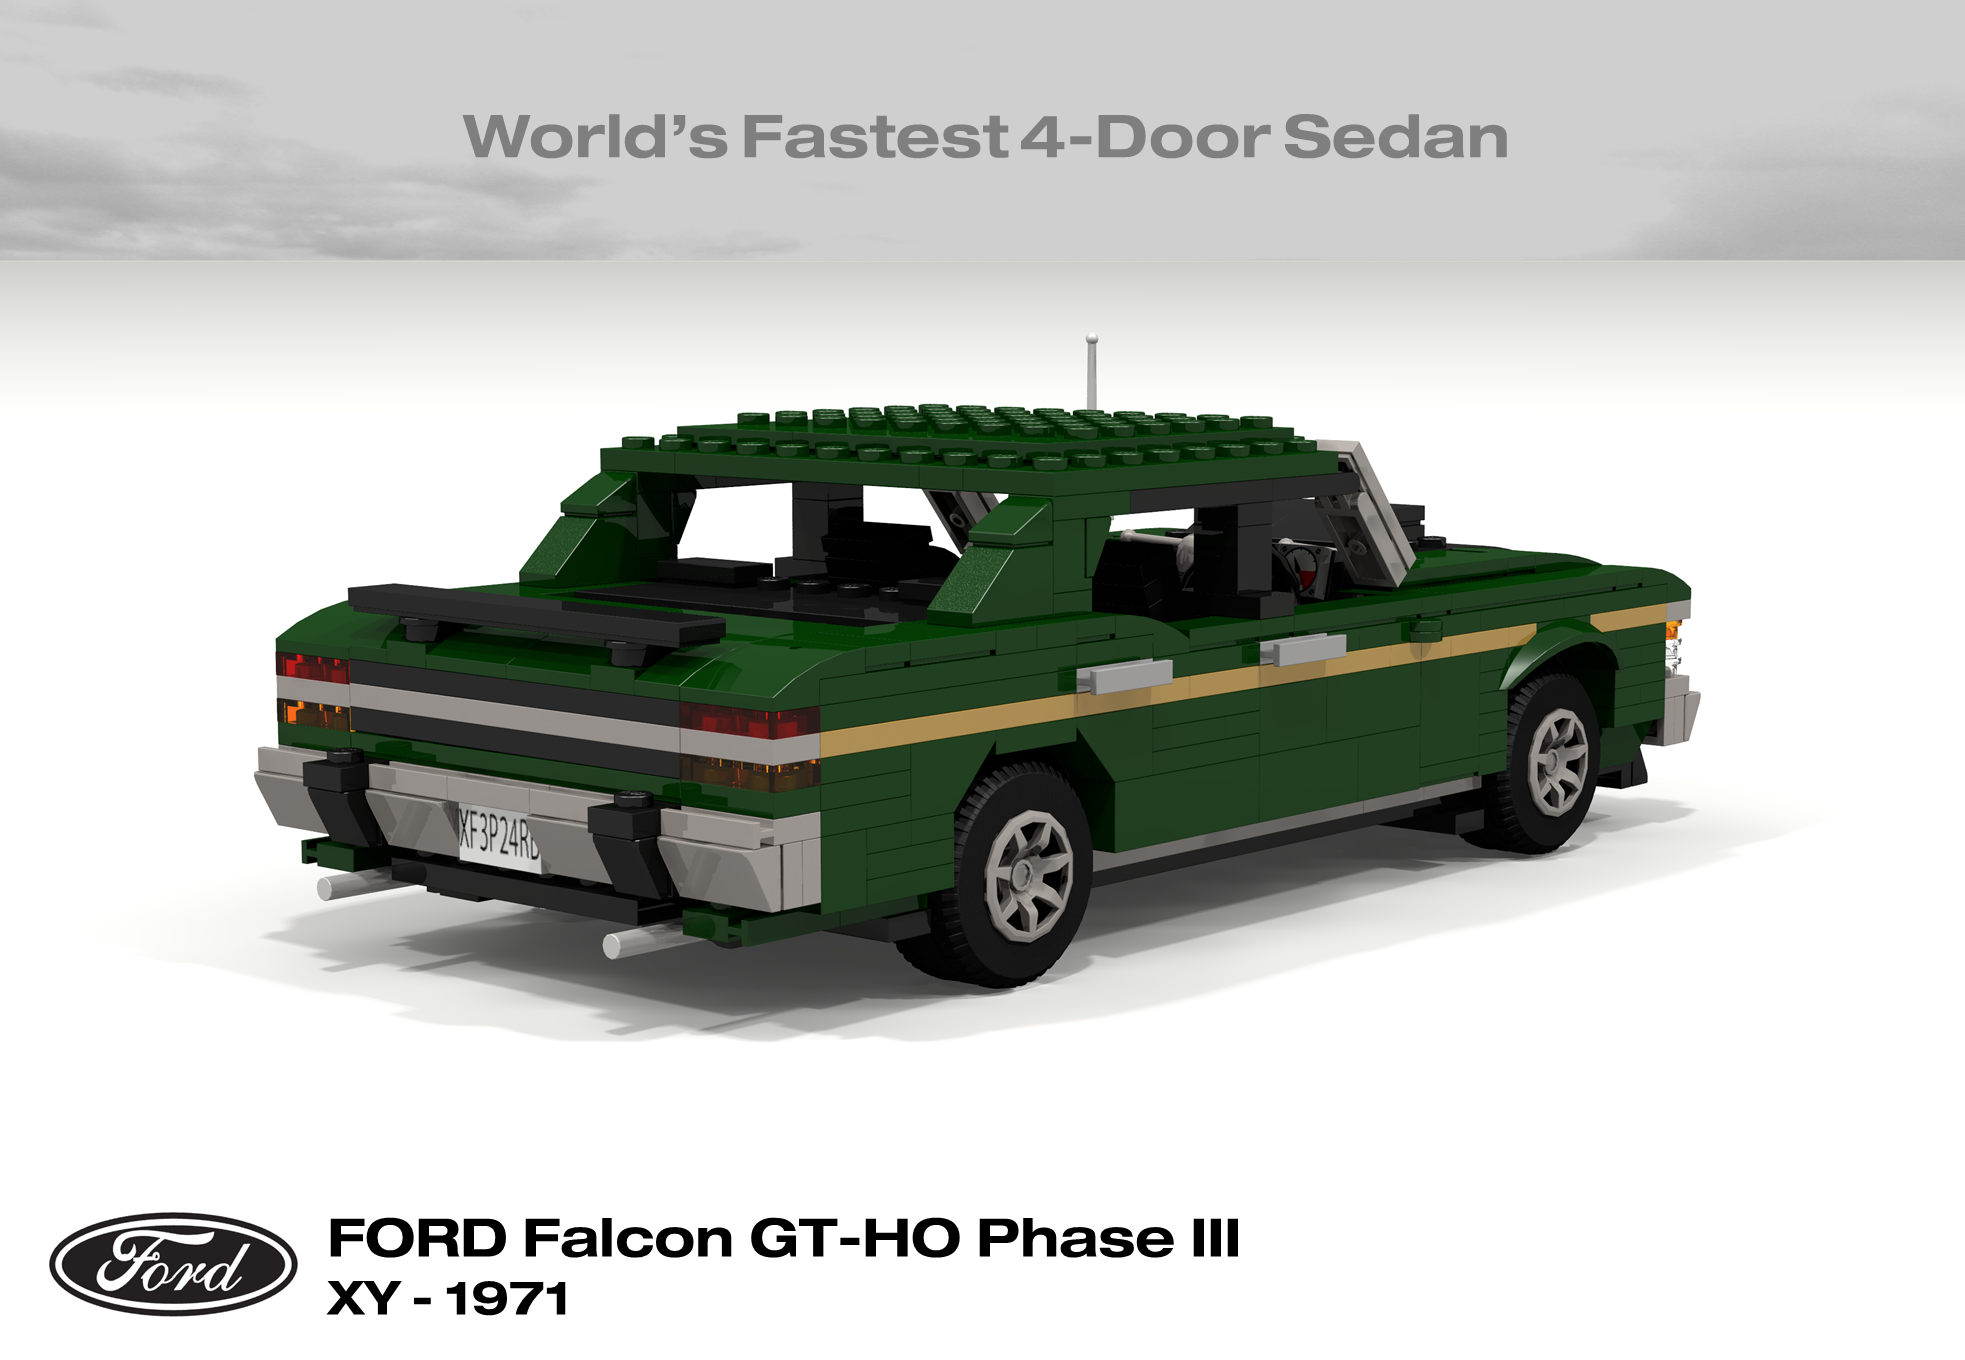 ford_falcon_xy_gt-ho_phase_iii_09.png